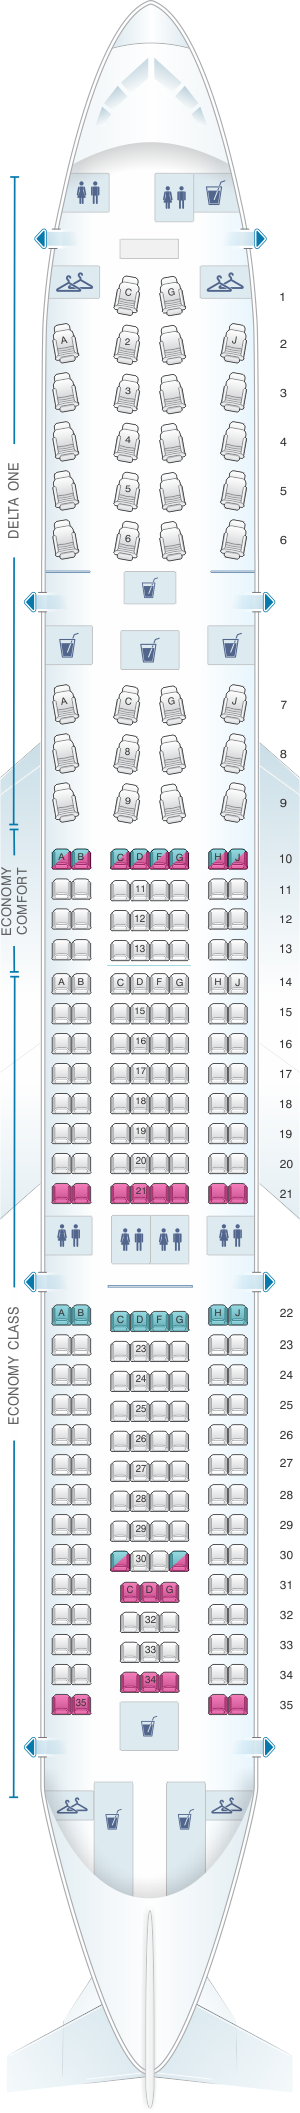 Seat map for Delta Air Lines Airbus A330 200 (332)